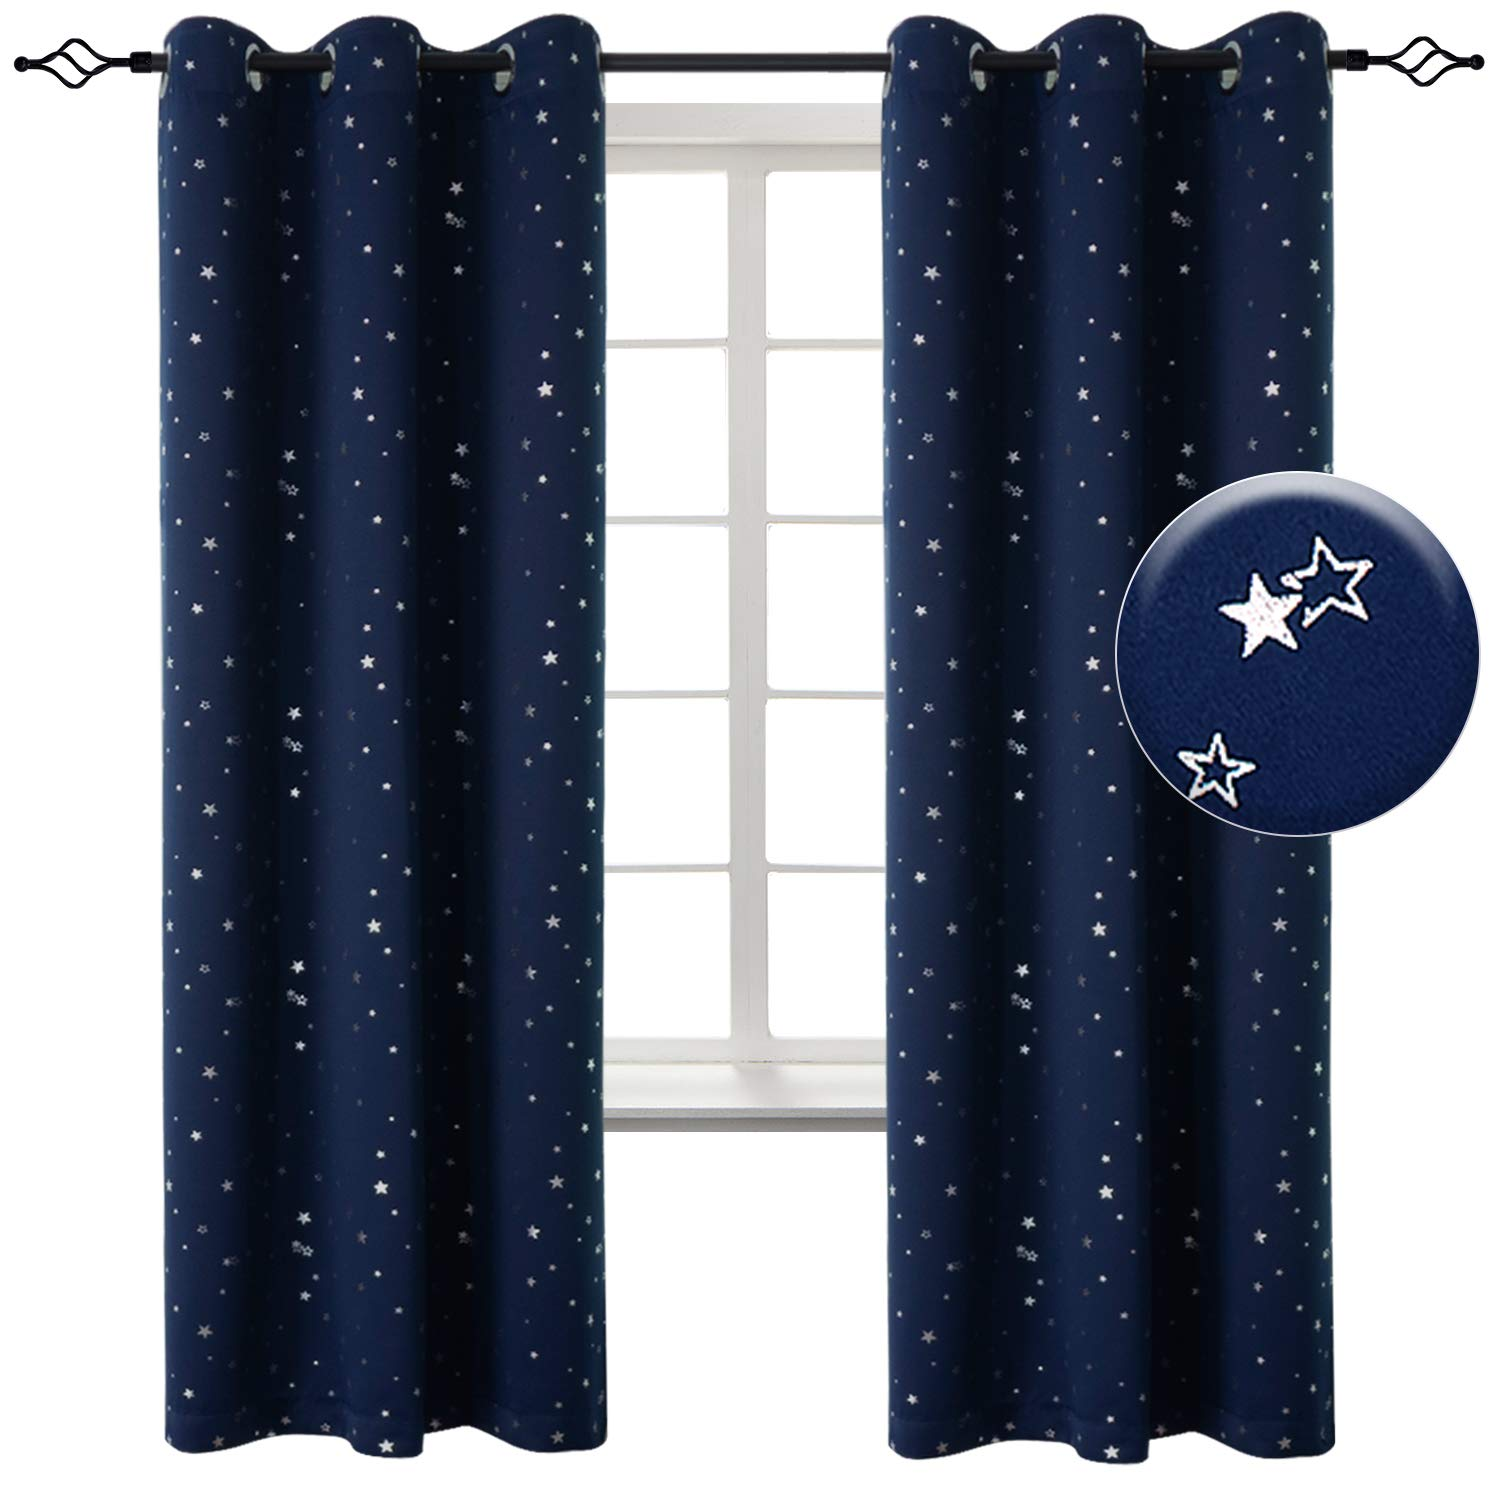 BGment Kids Blackout Curtains for Boys Bedroom - Grommet Thermal Insulated Silver Star Print Room Darkening Curtains for Living Room, Set of 2 Panels (42 x 72 Inch, Navy)